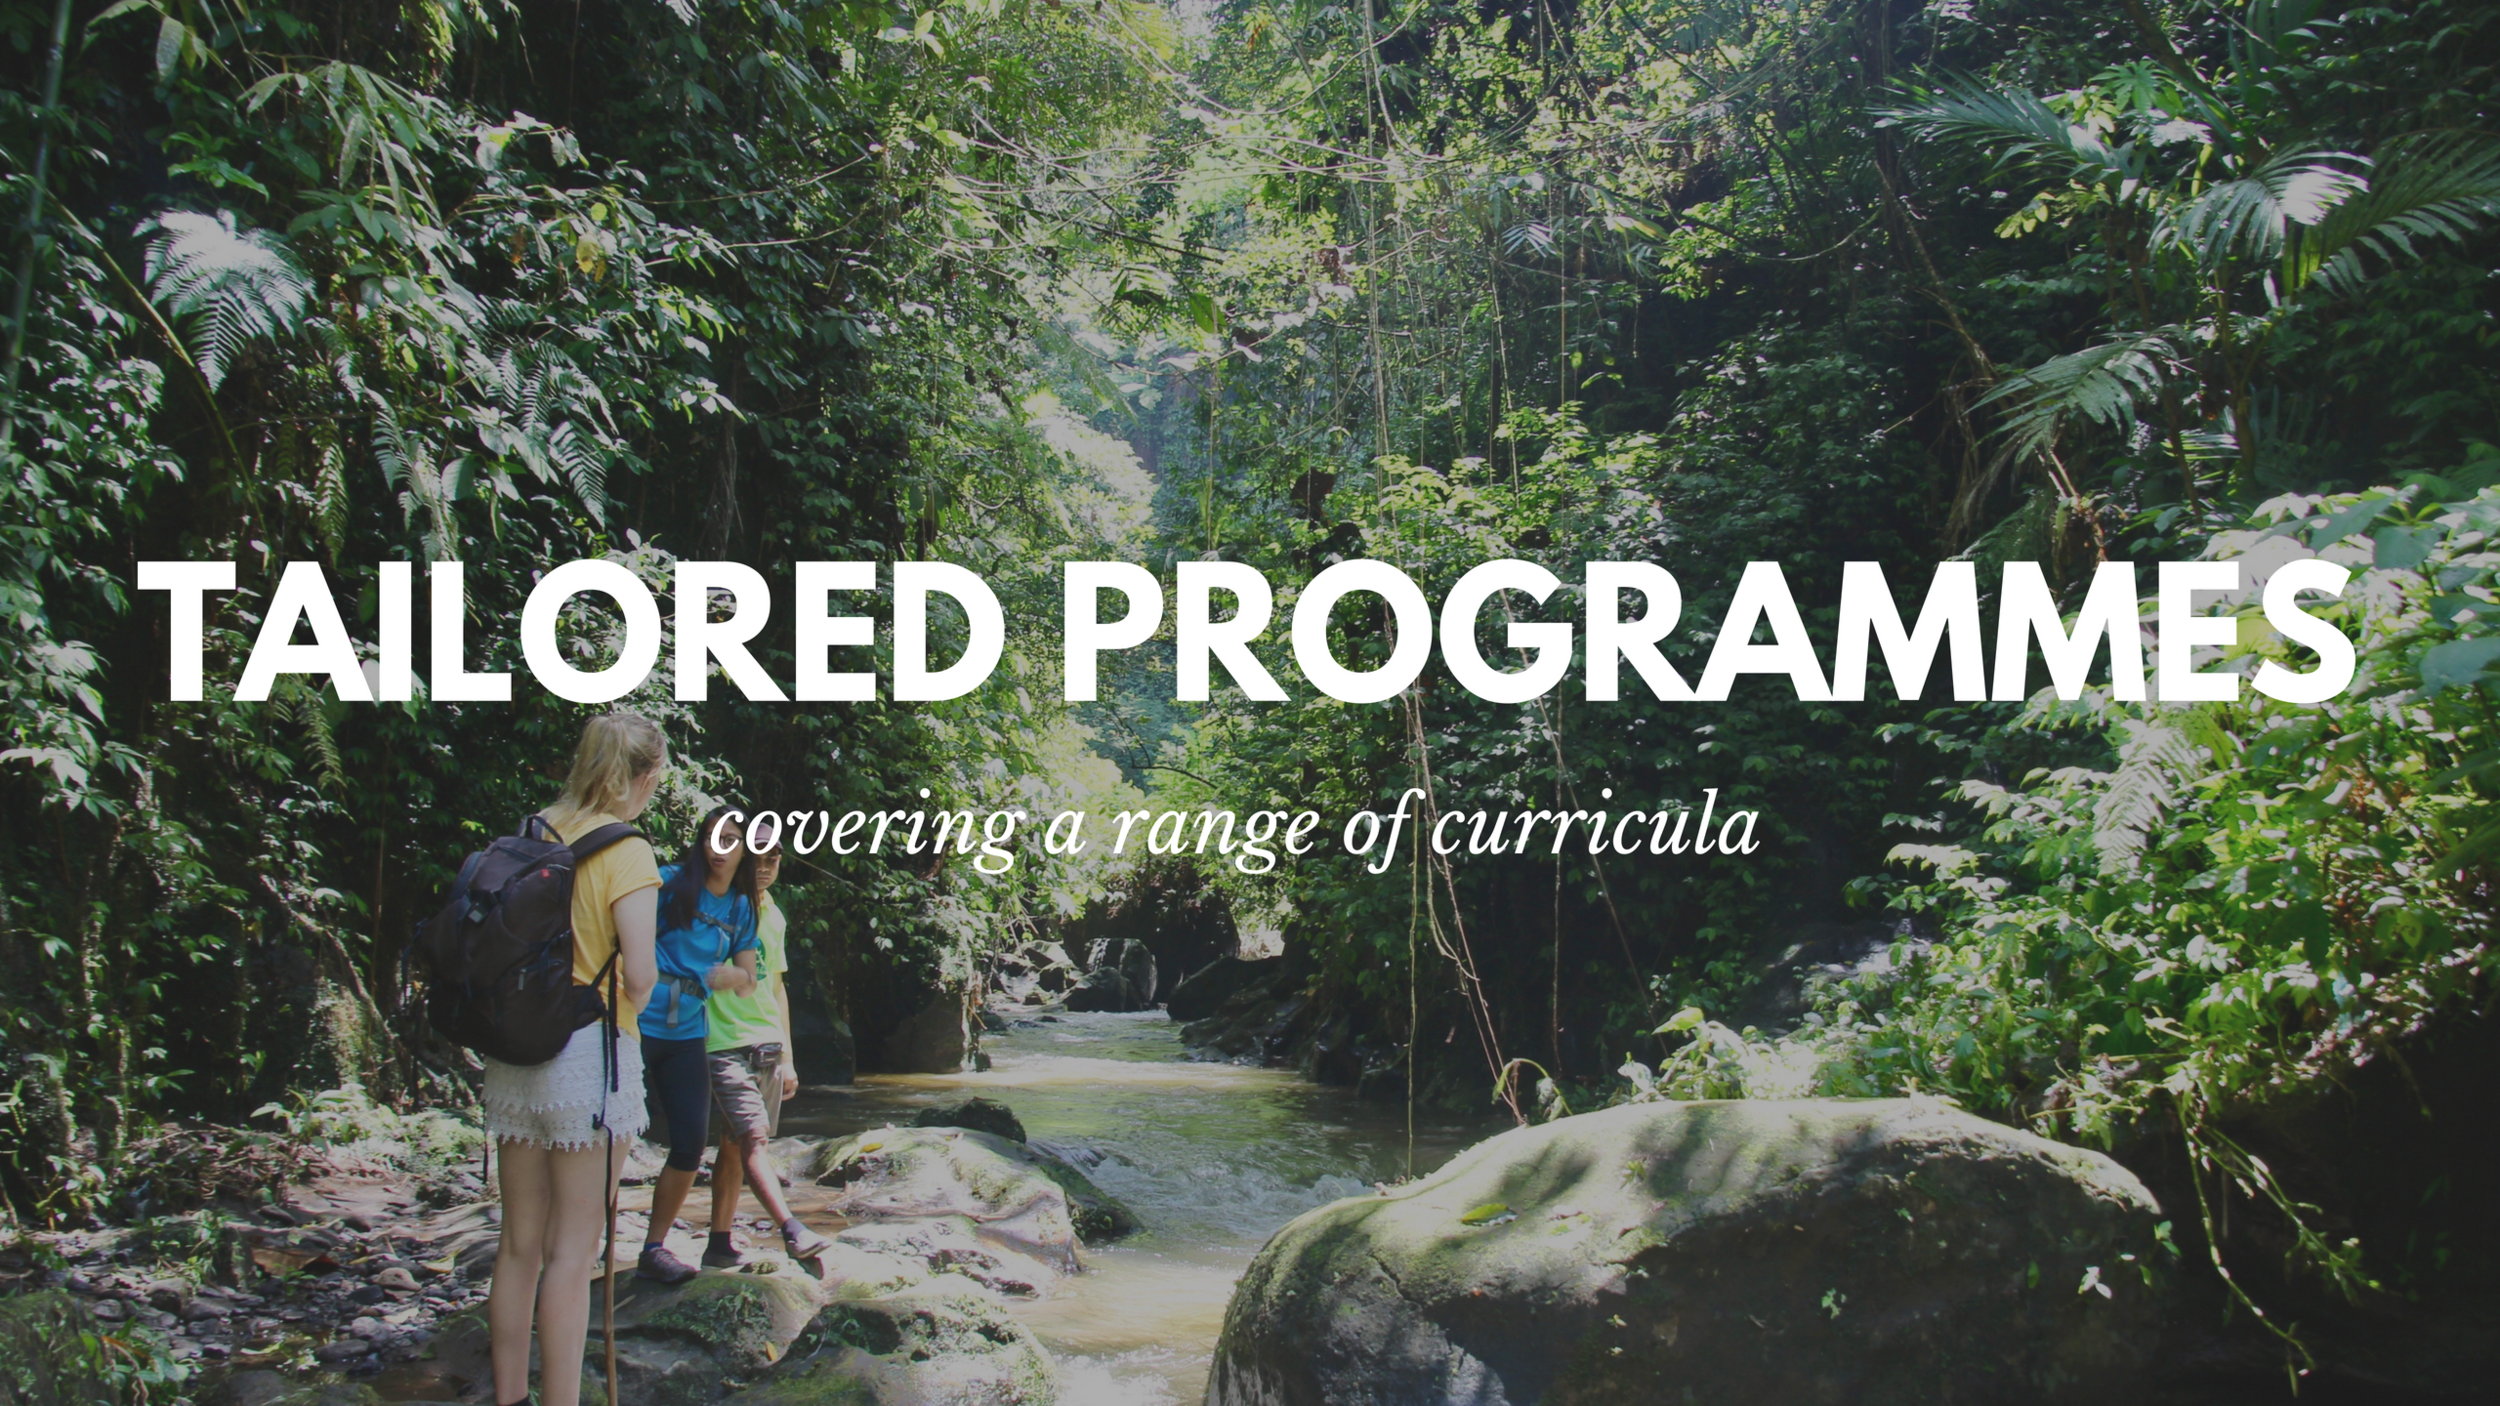 tailored programmes covering a range of curricula